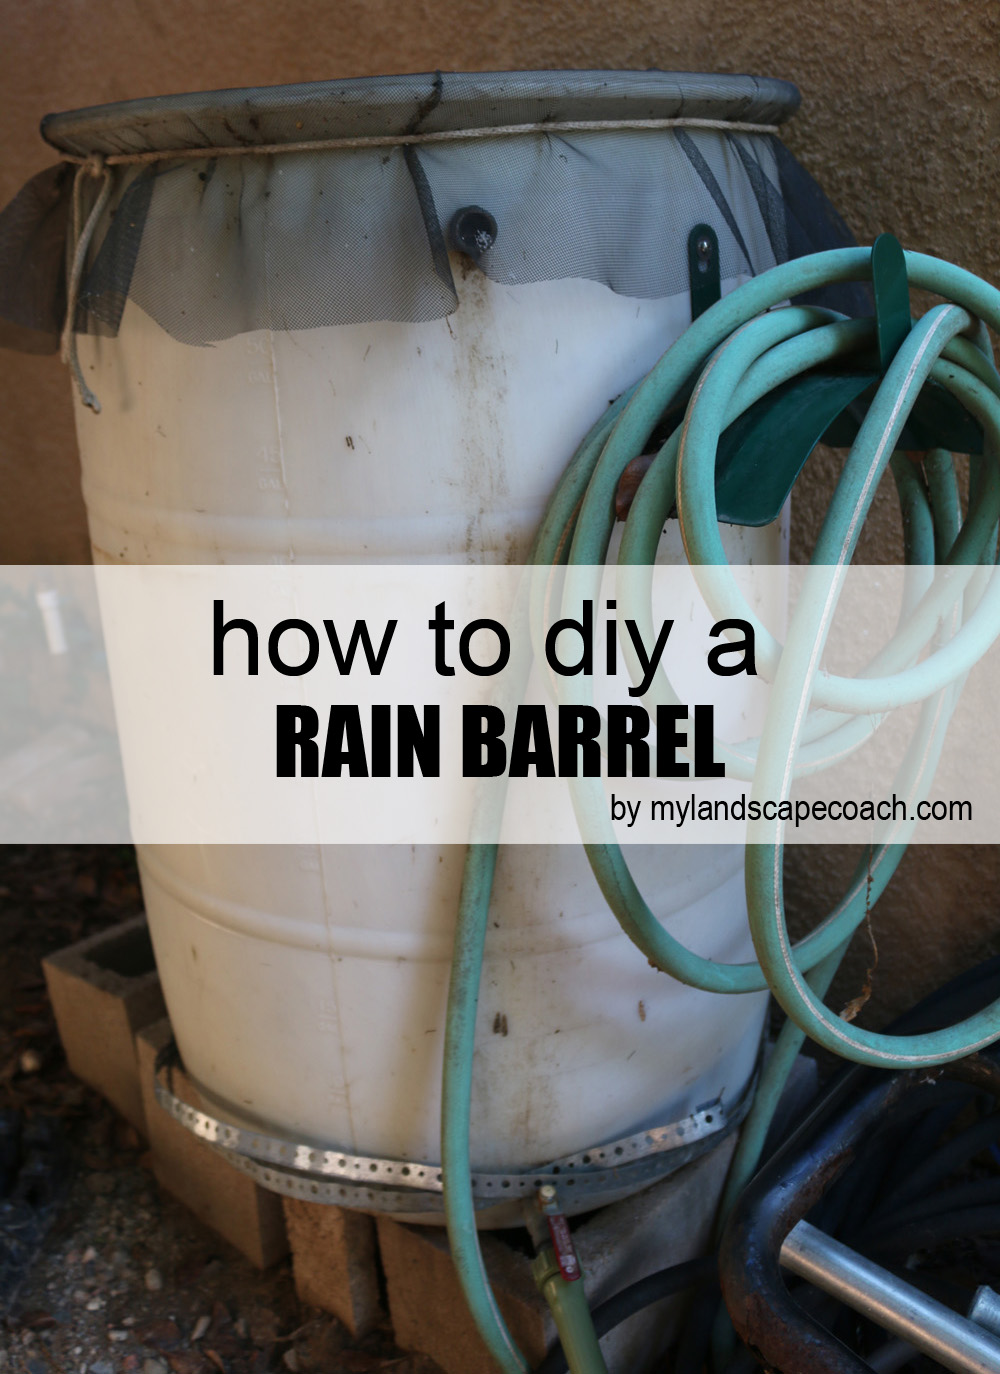 HOWTODIYRAINBARREL copy